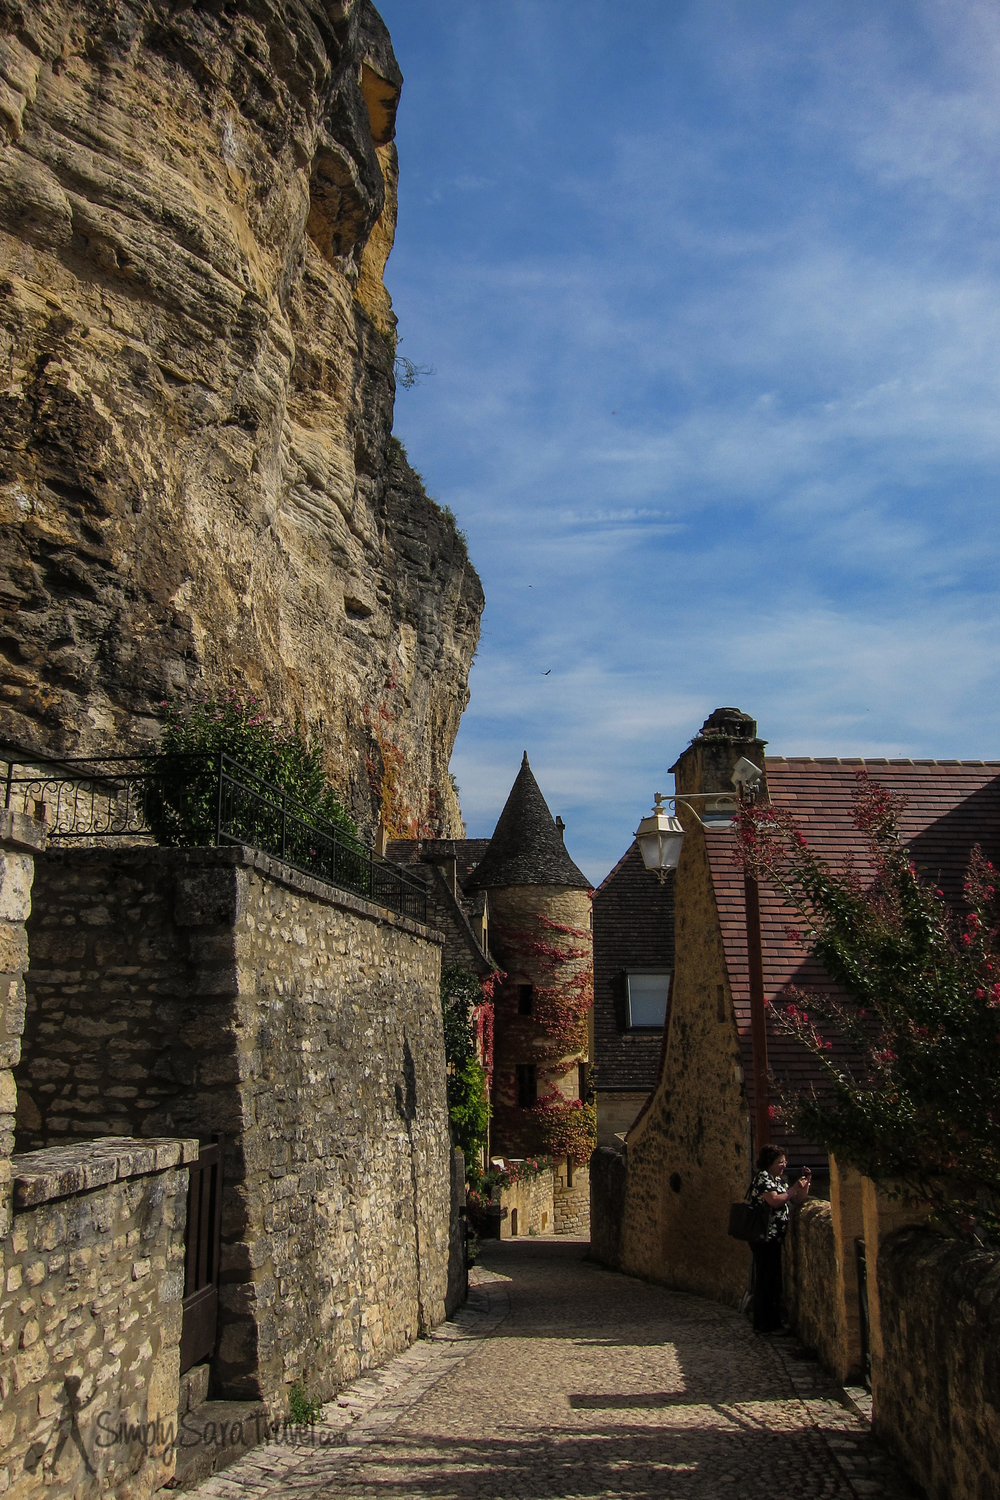 Looking down the street of La Roque-Gageac, Dordogne, France